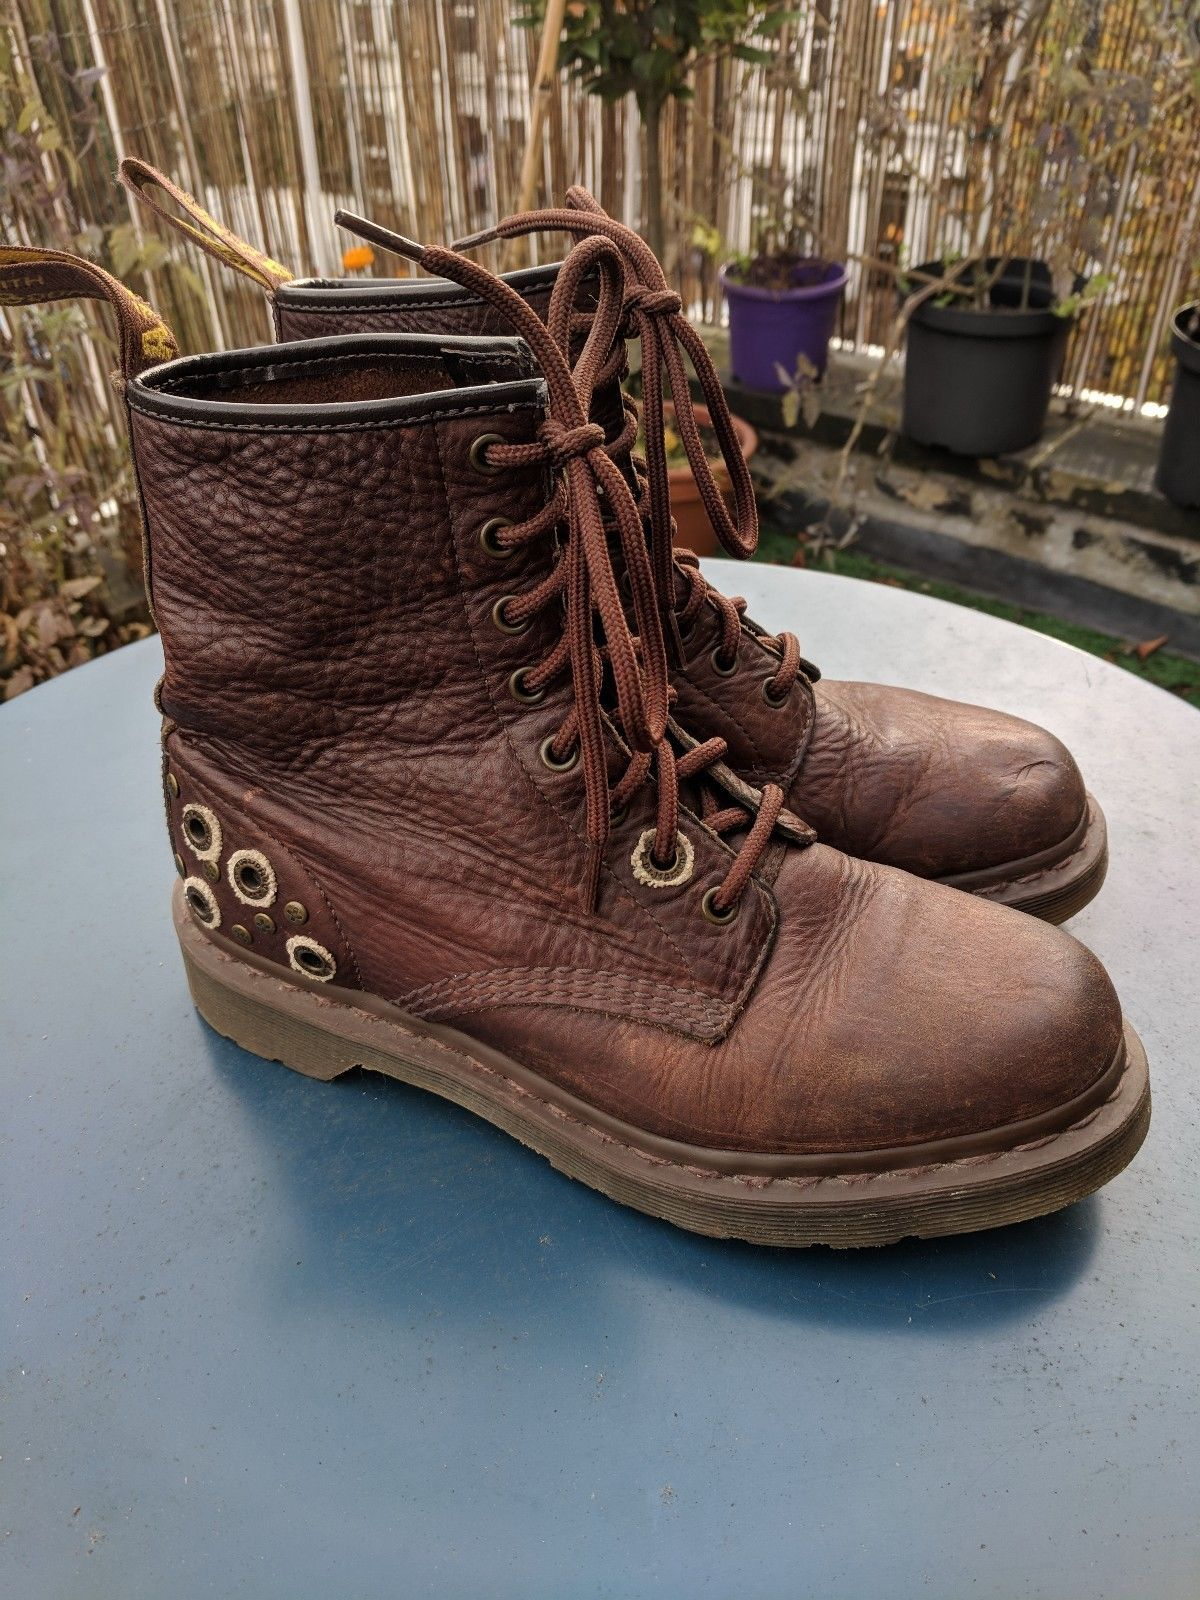 Dr Martens Nubuck Leather Boots With Detail Boots Leather Boots Nubuck Leather